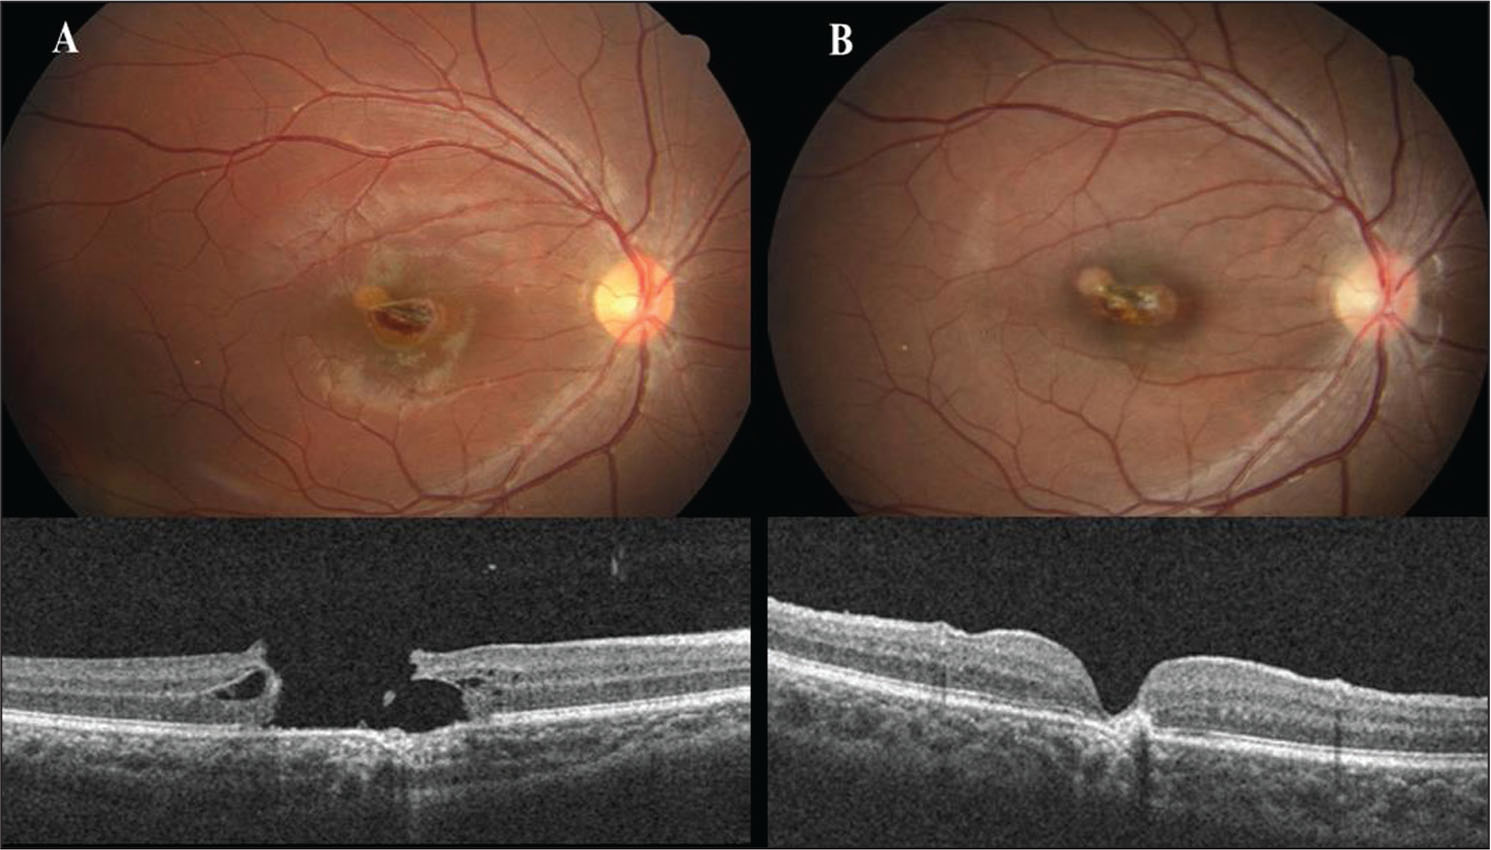 (A) Before vitrectomy, indirect funduscopy and optical coherence tomography in the right eye revealed a macular hole in case 2. (B) After vitrectomy, the visual acuity recovered to 20/50 and the macular hole was closed.